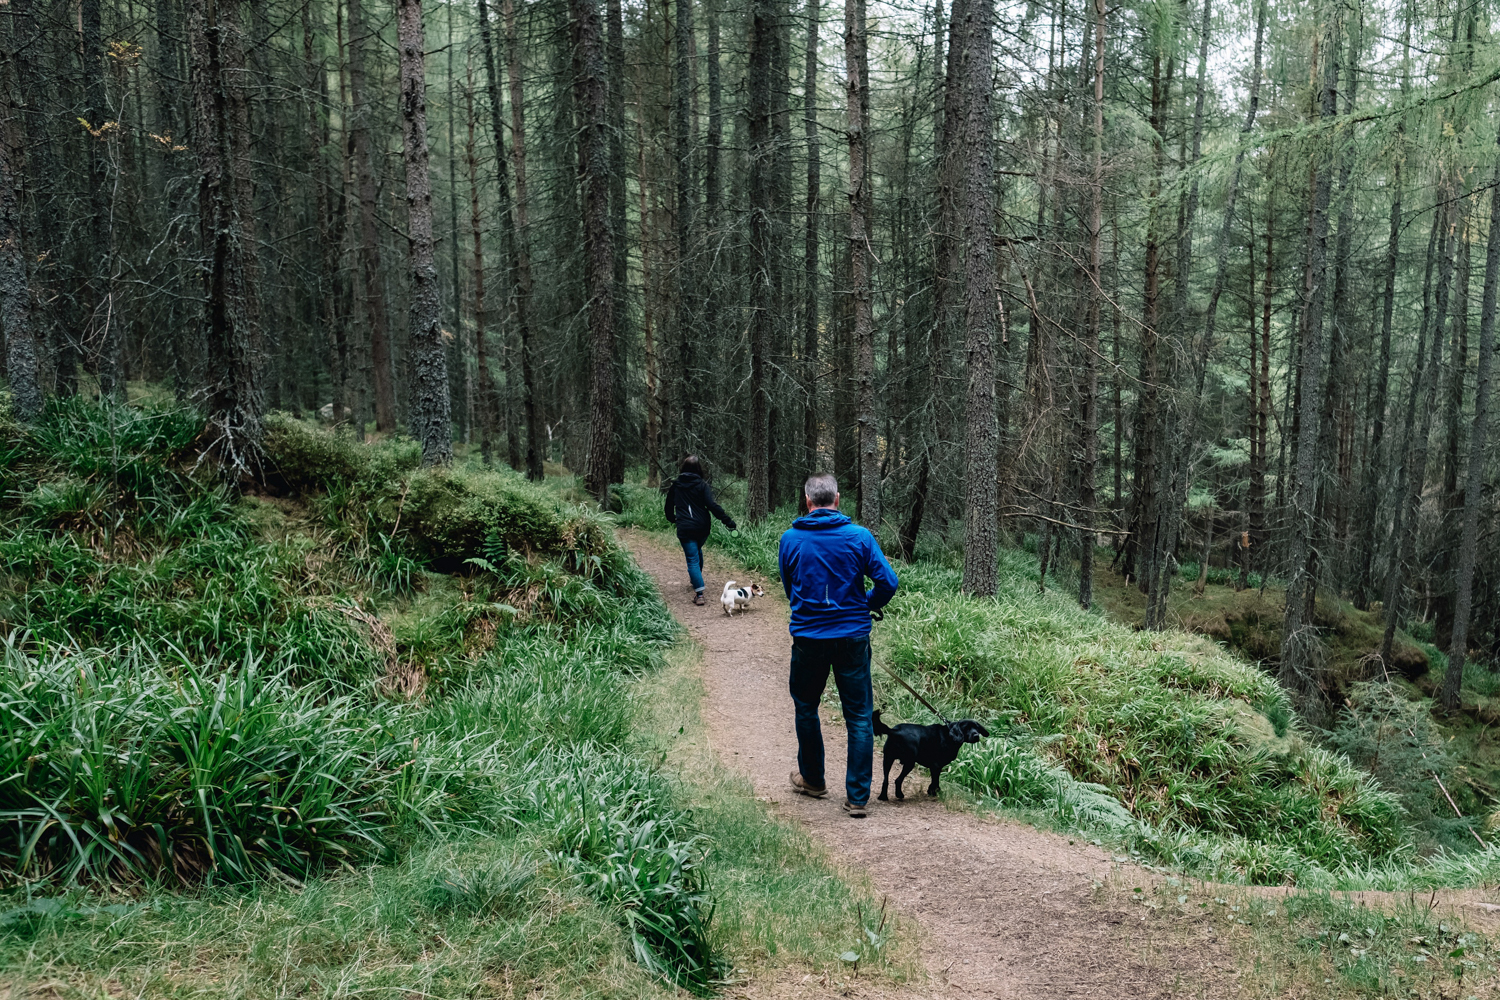 Two dog walkers out in a woodland area.